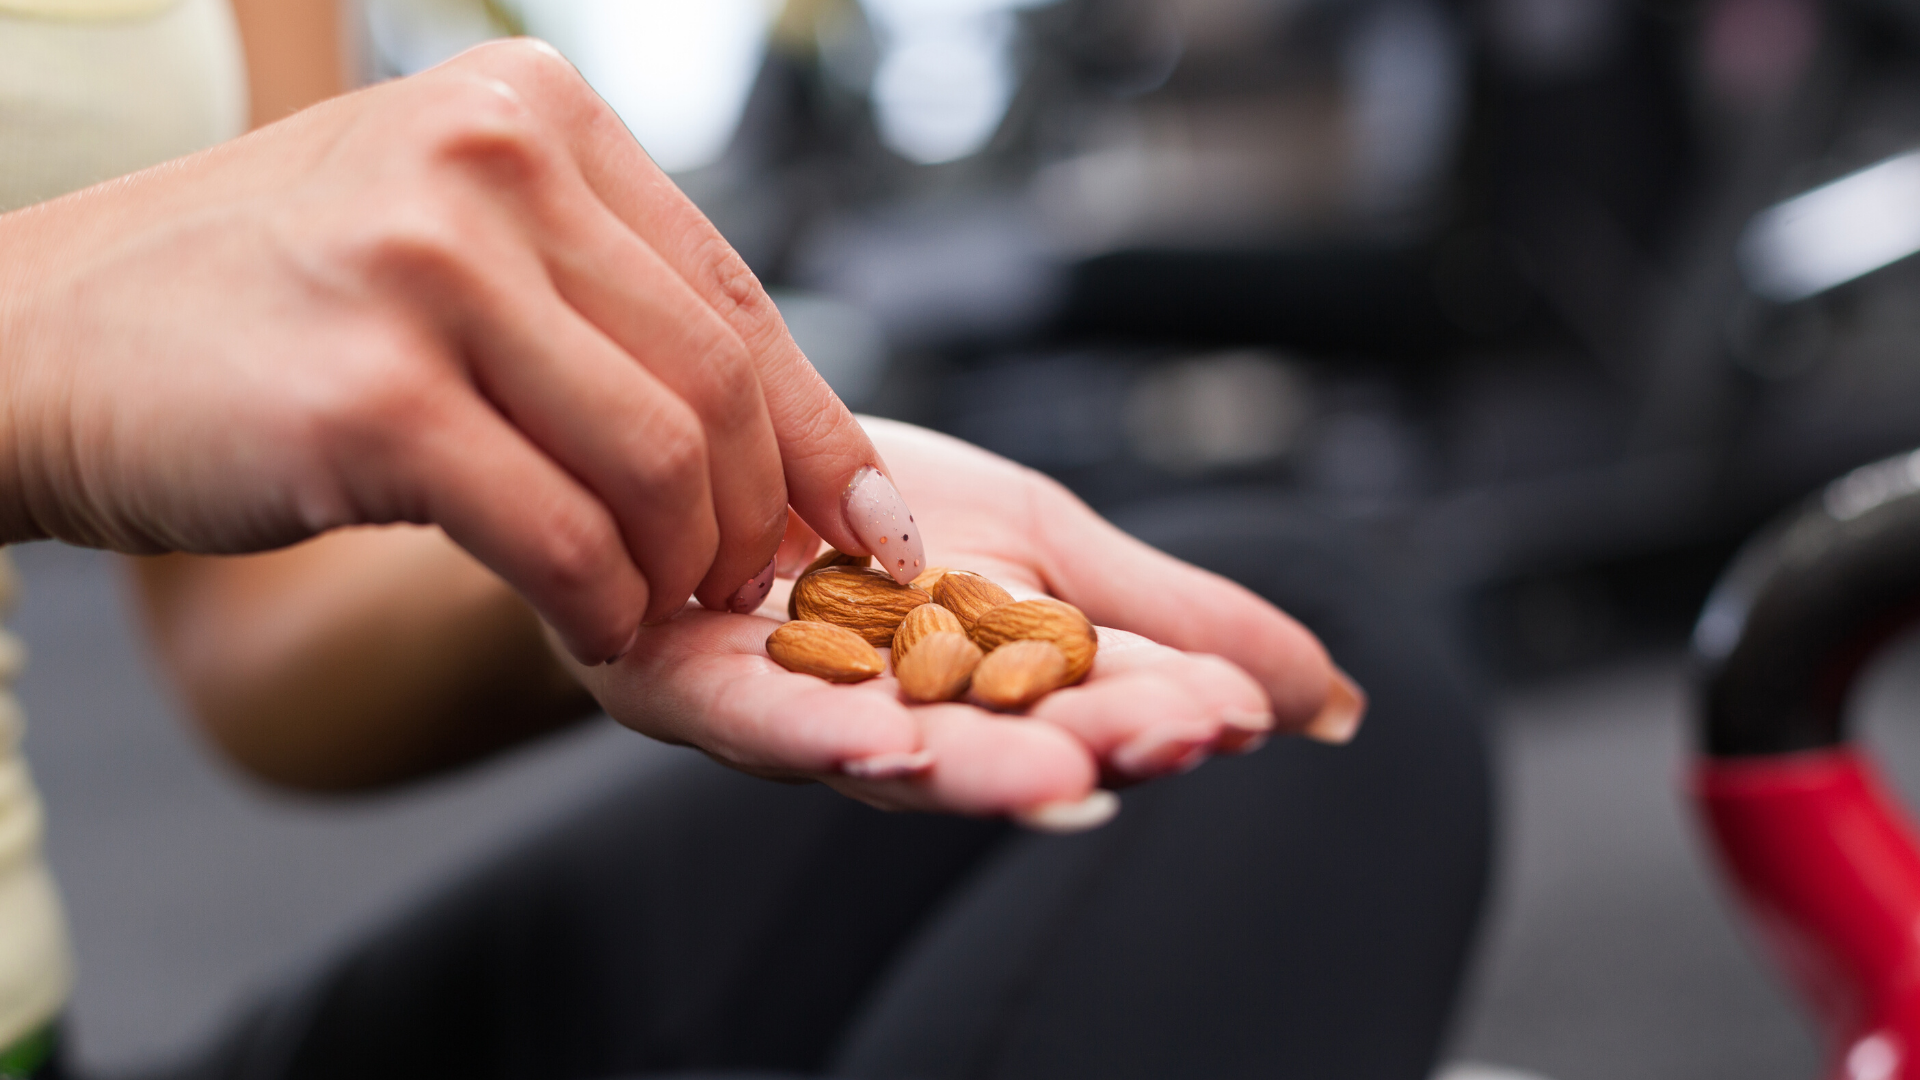 Close up of hand holding almonds.